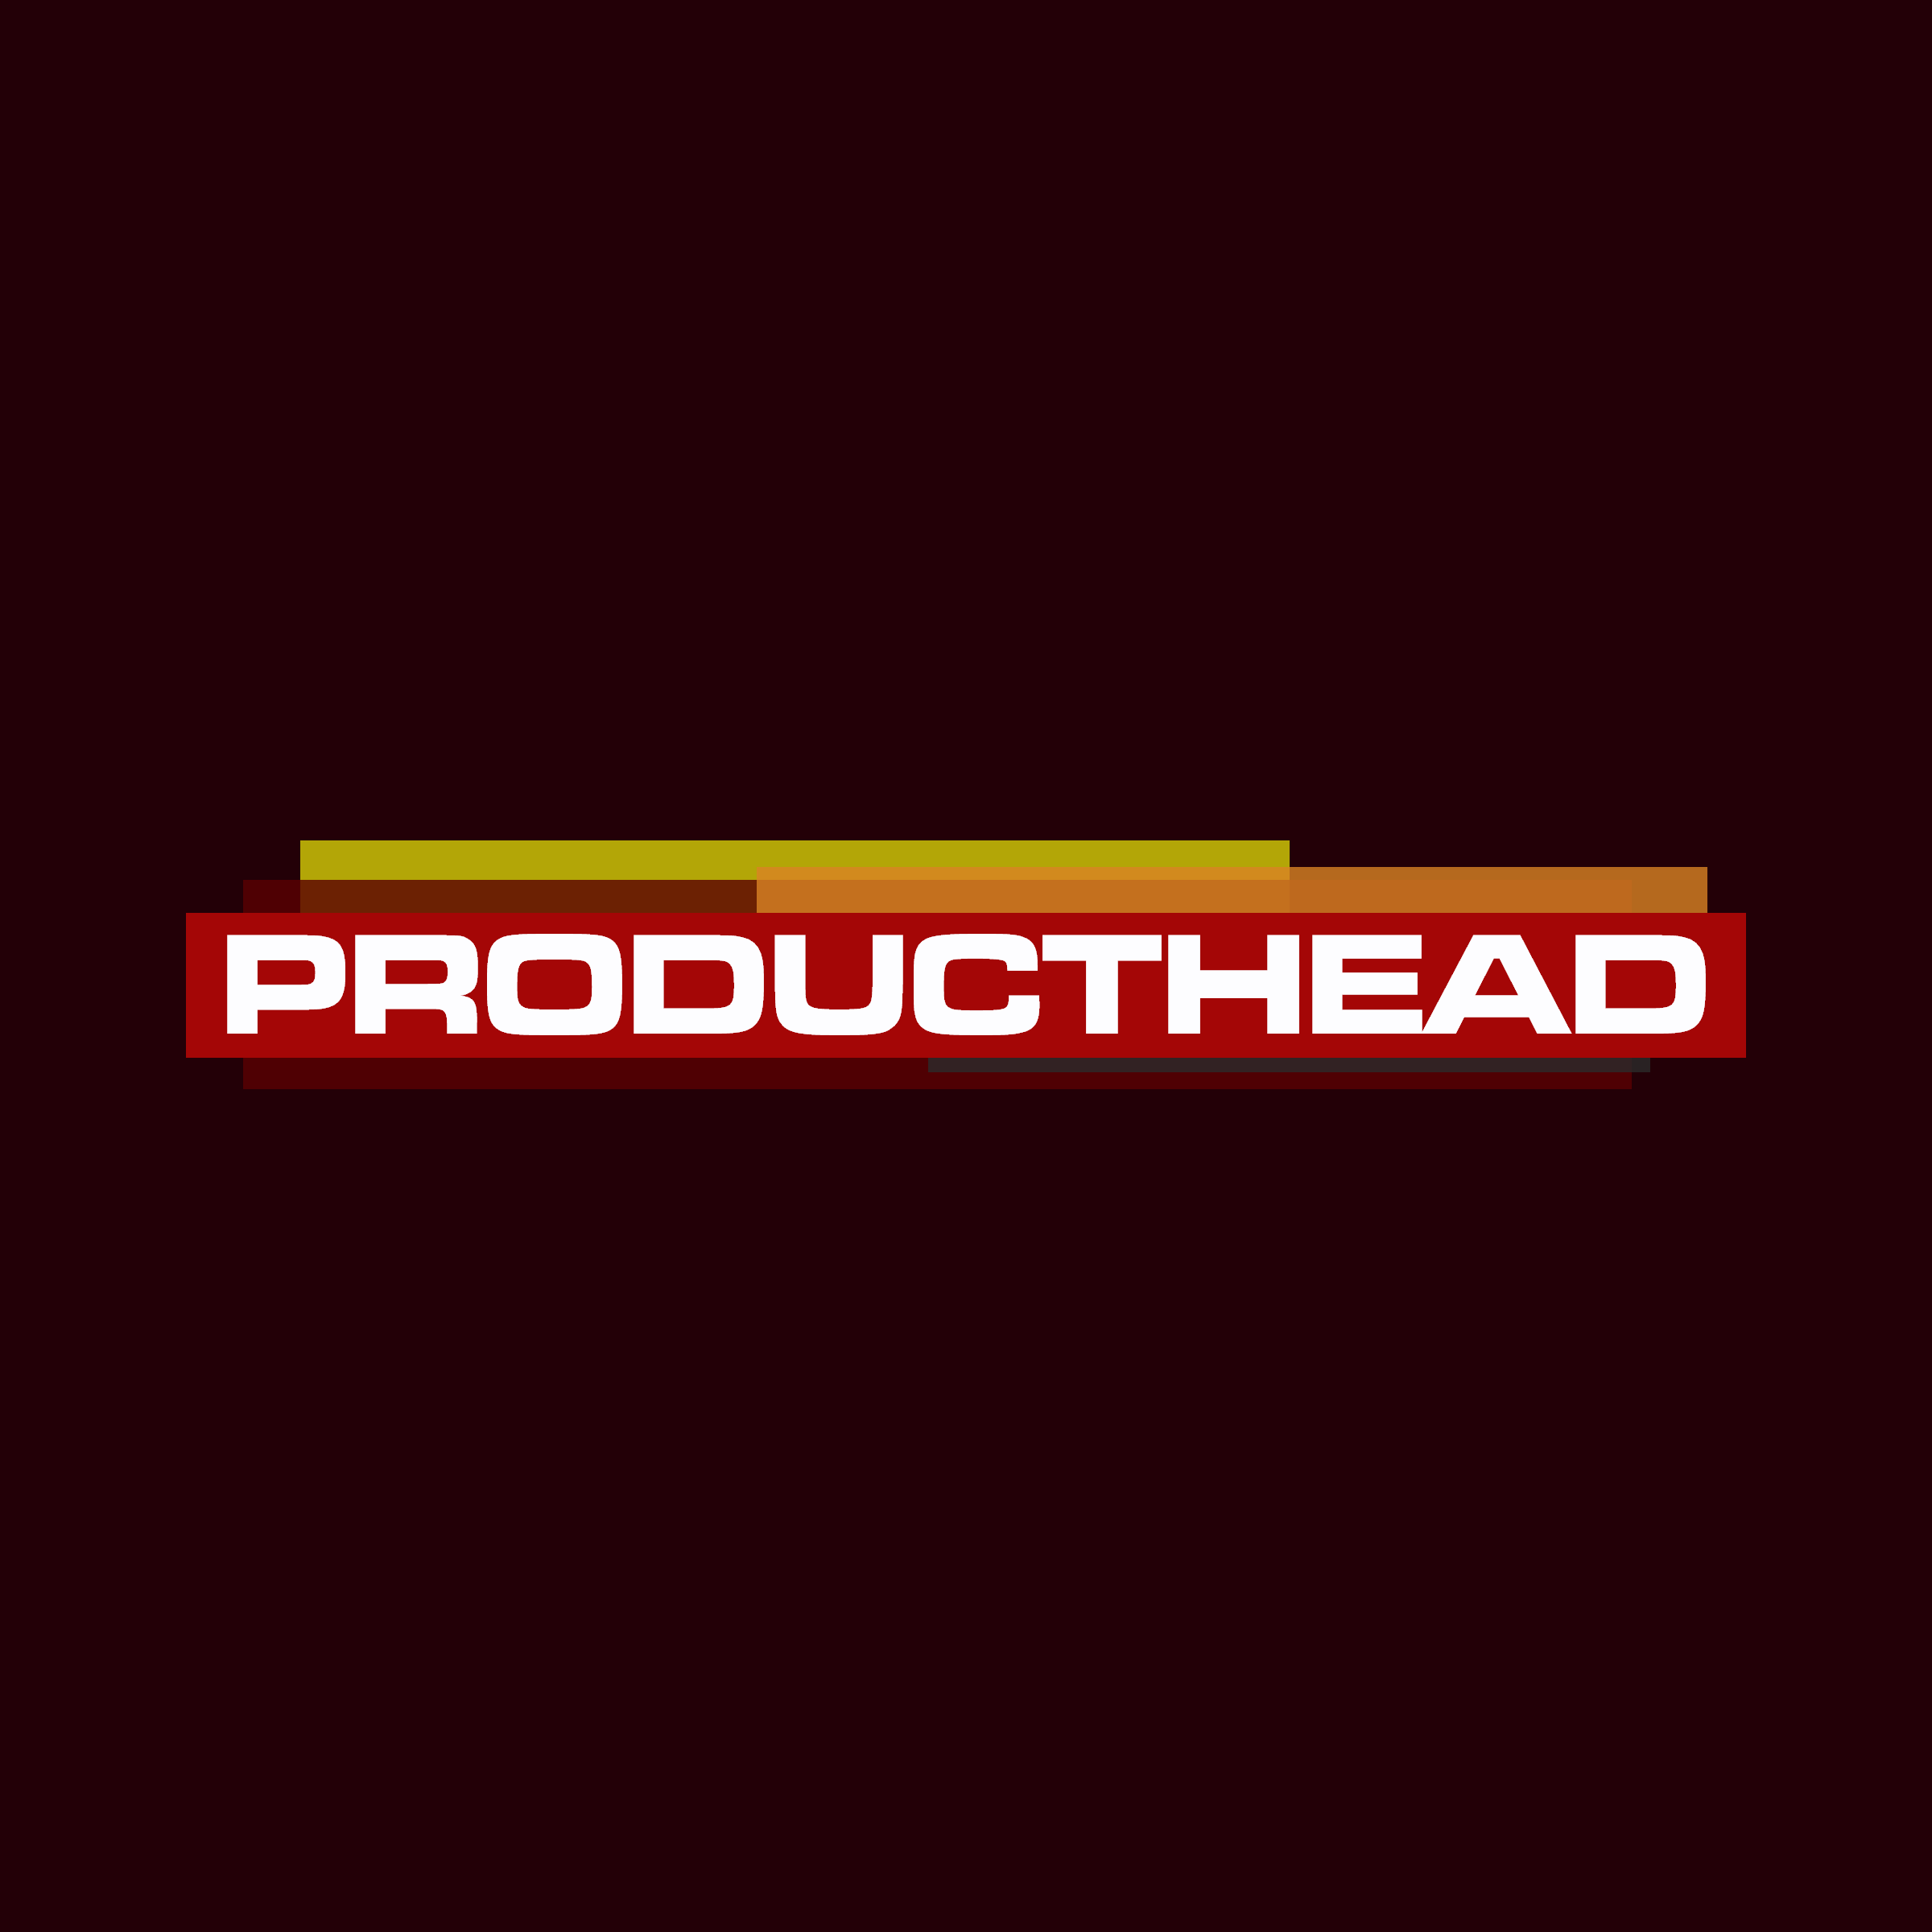 PRODUCTHEAD: There are only 5 product strategies